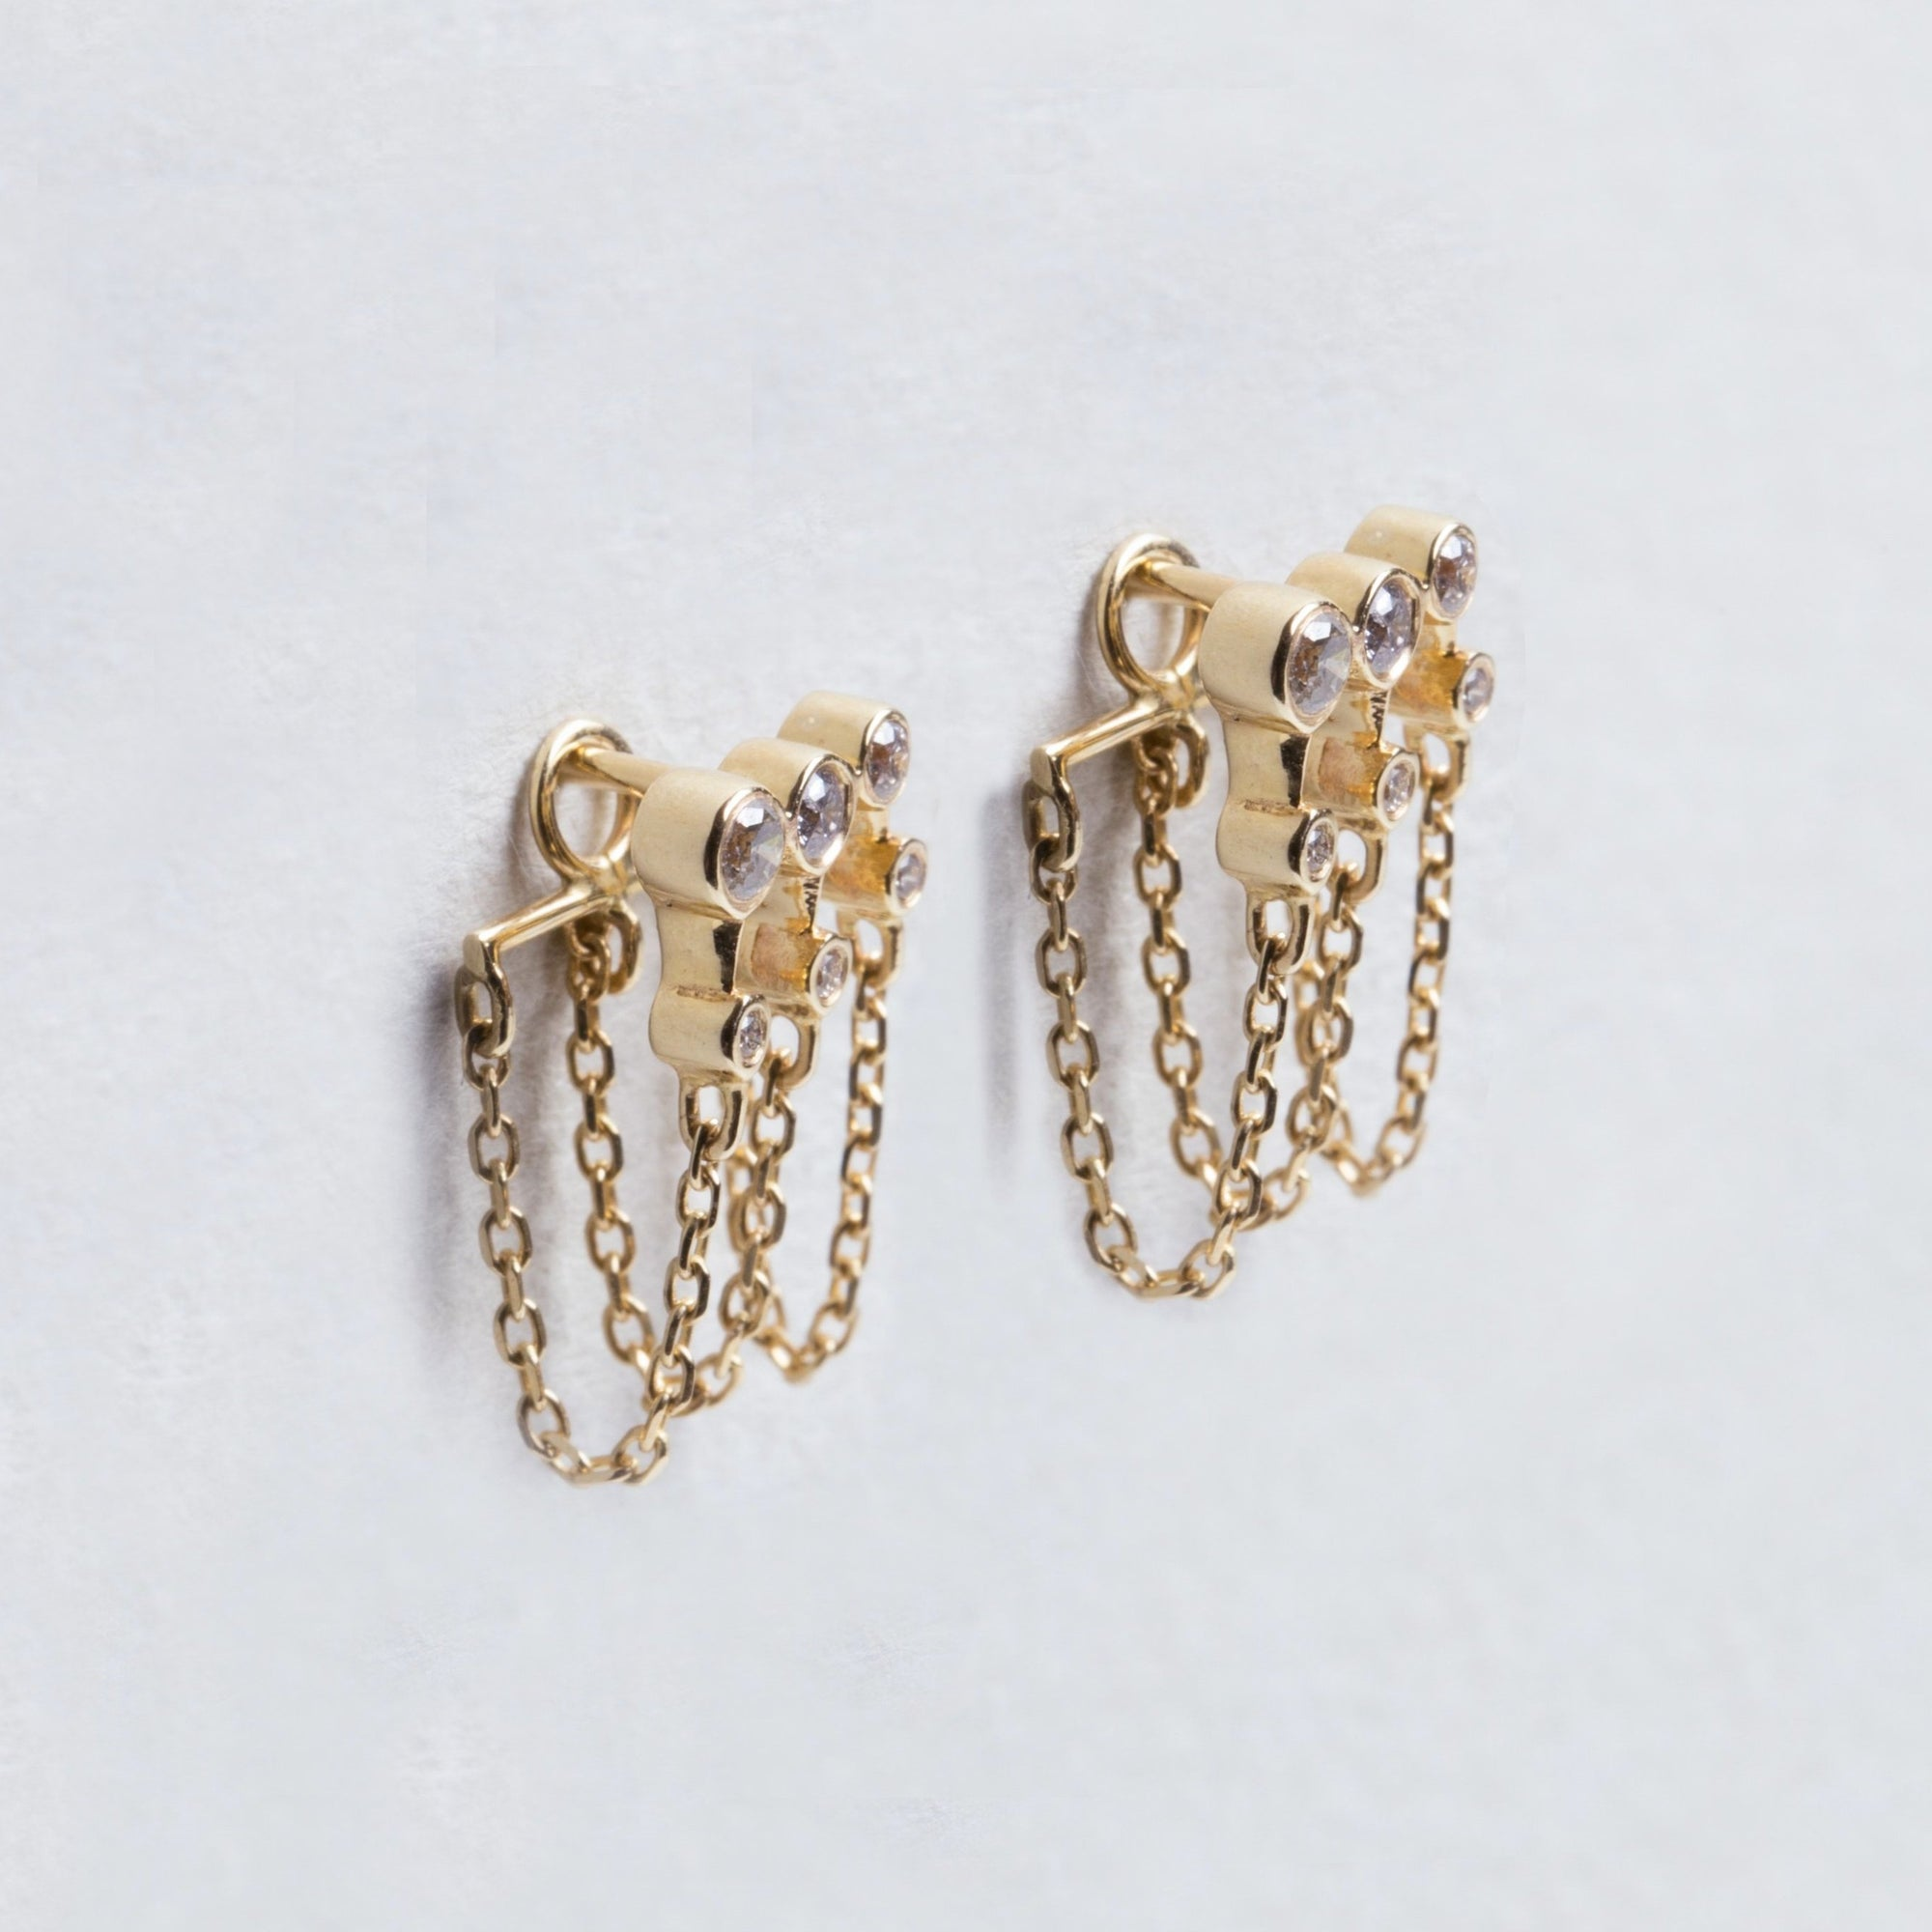 Triple Chain Gold Earrings with Diamonds